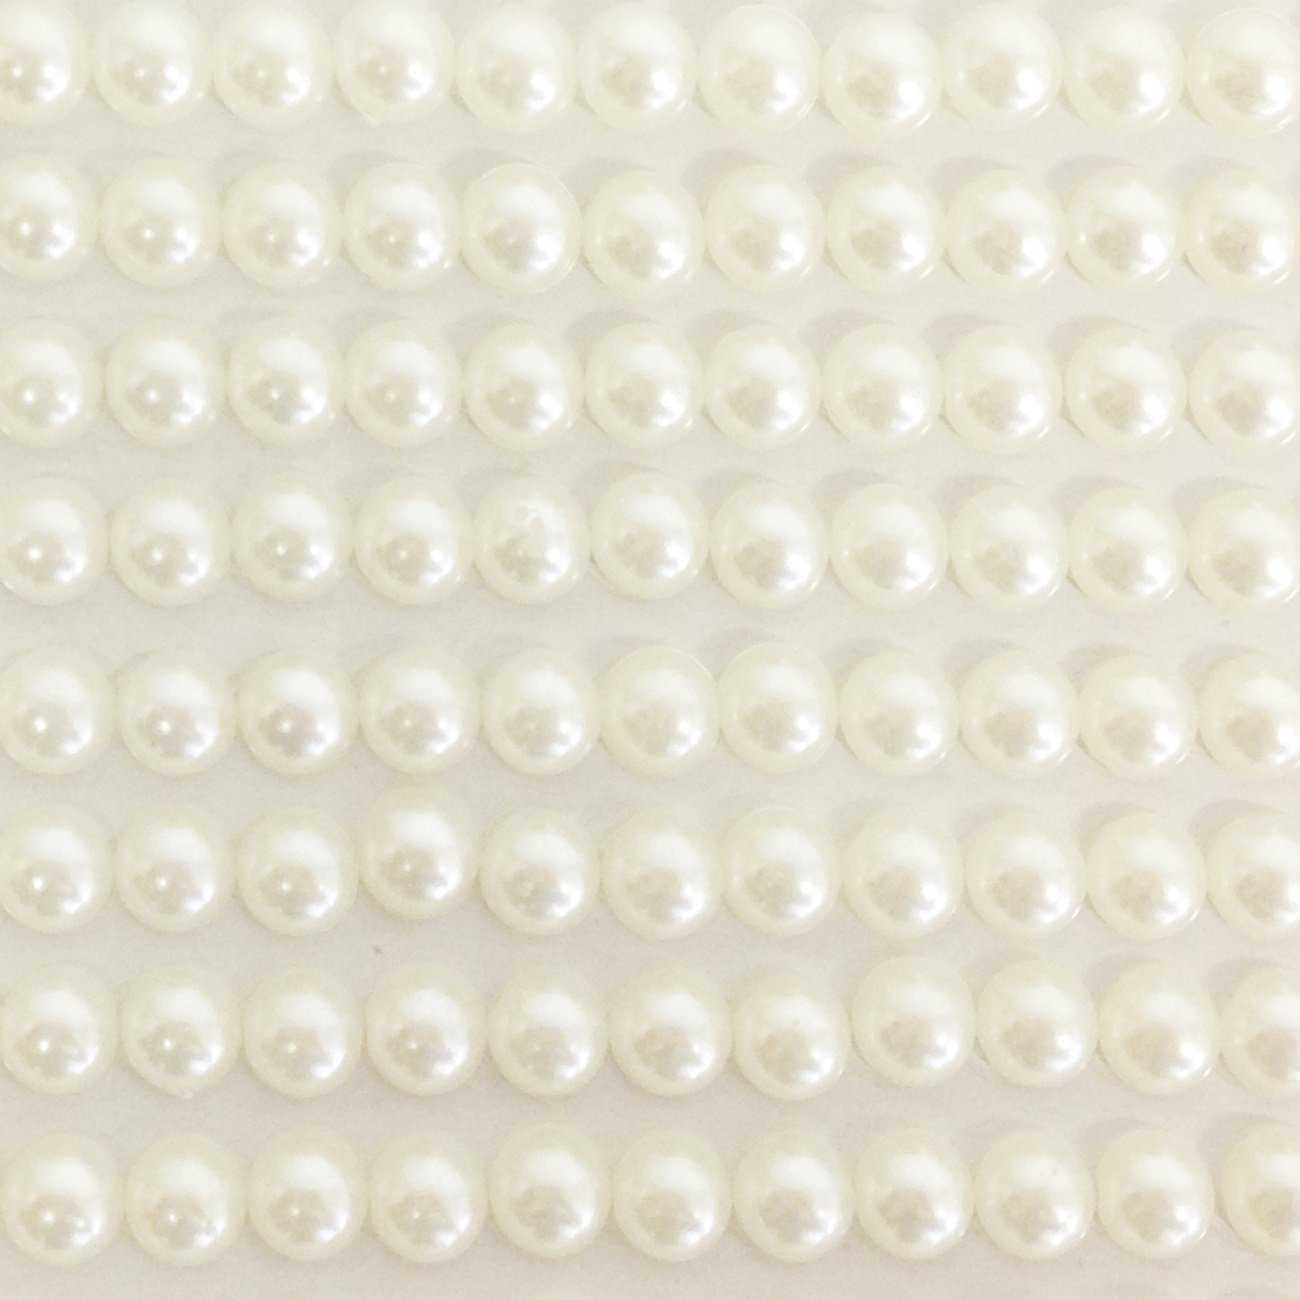 Wrapables 5mm Self Adhesive Pearl Stickers, 765pcs